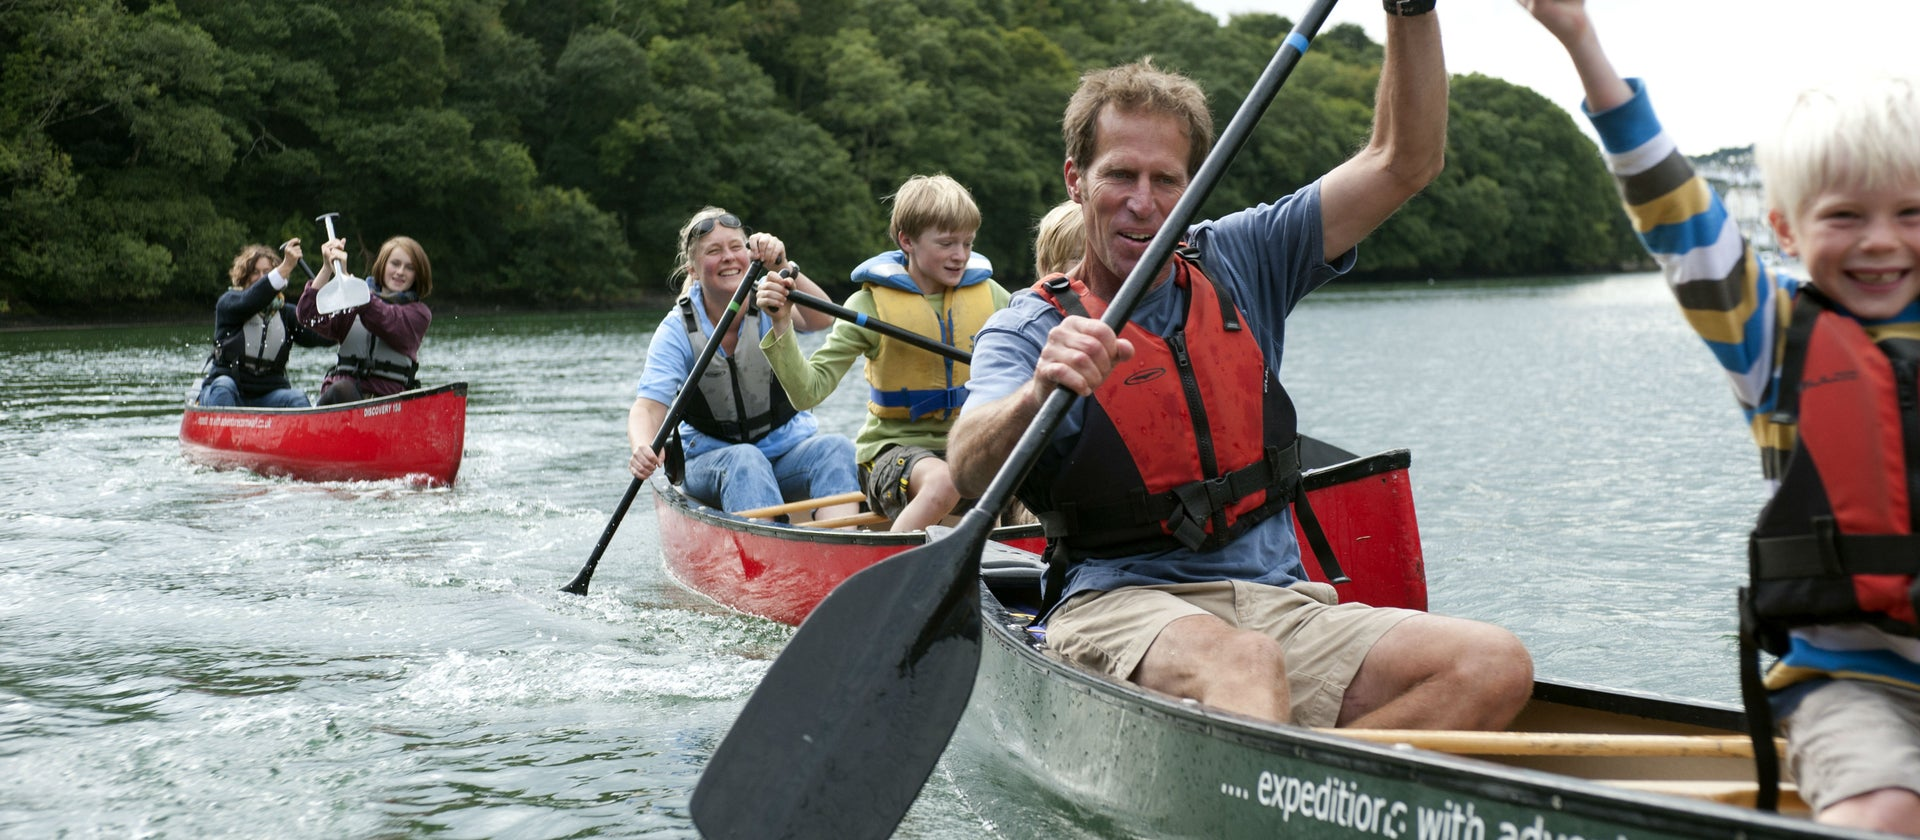 Watersports places in the UK | National TrustVisit our Facebook pageVisit our Twitter pageVisit our